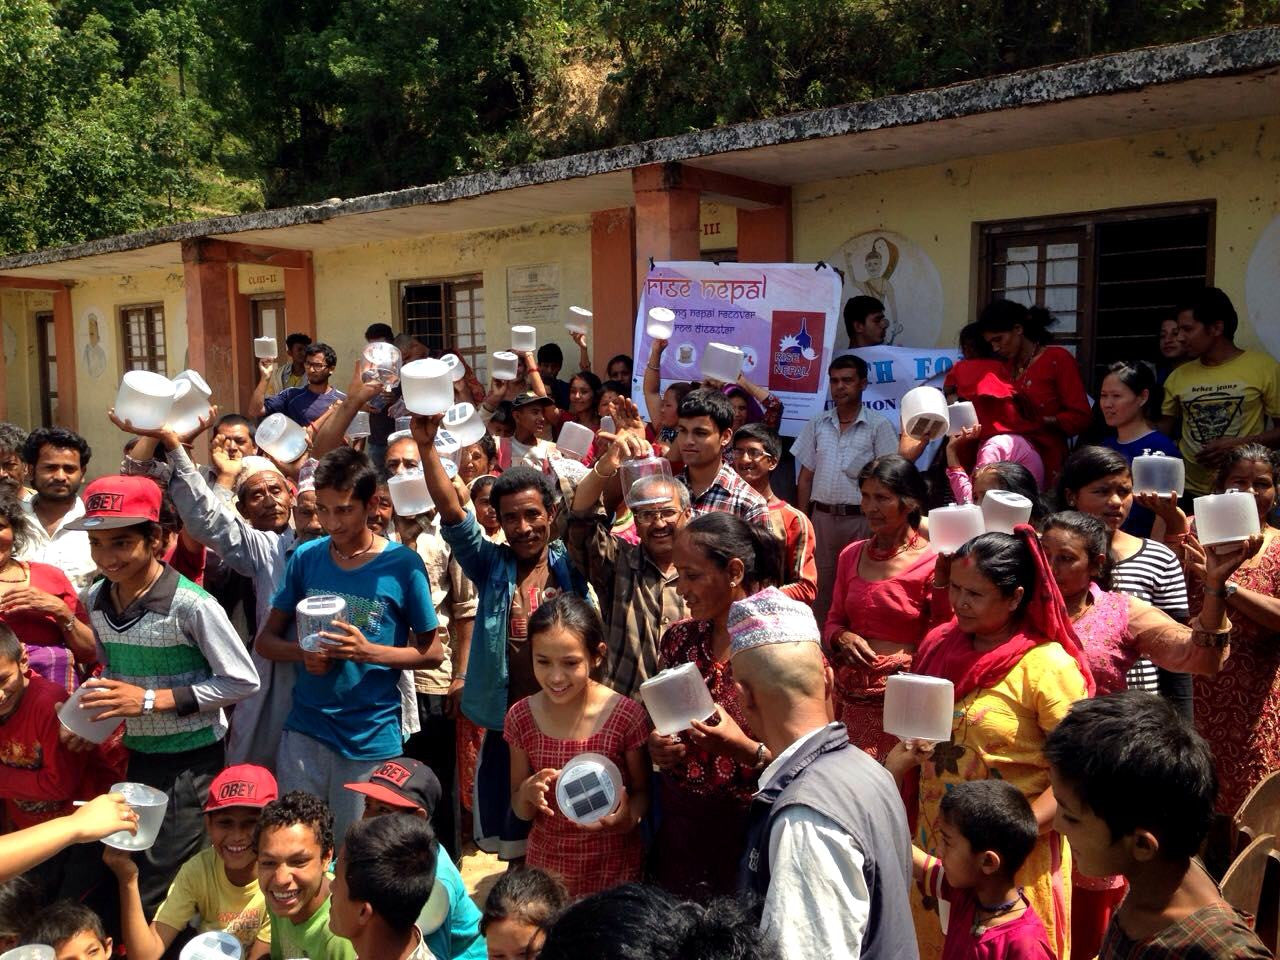 MPOWERD Delivers Over 2,000 Solar Lights to Victims of Nepal Earthquake